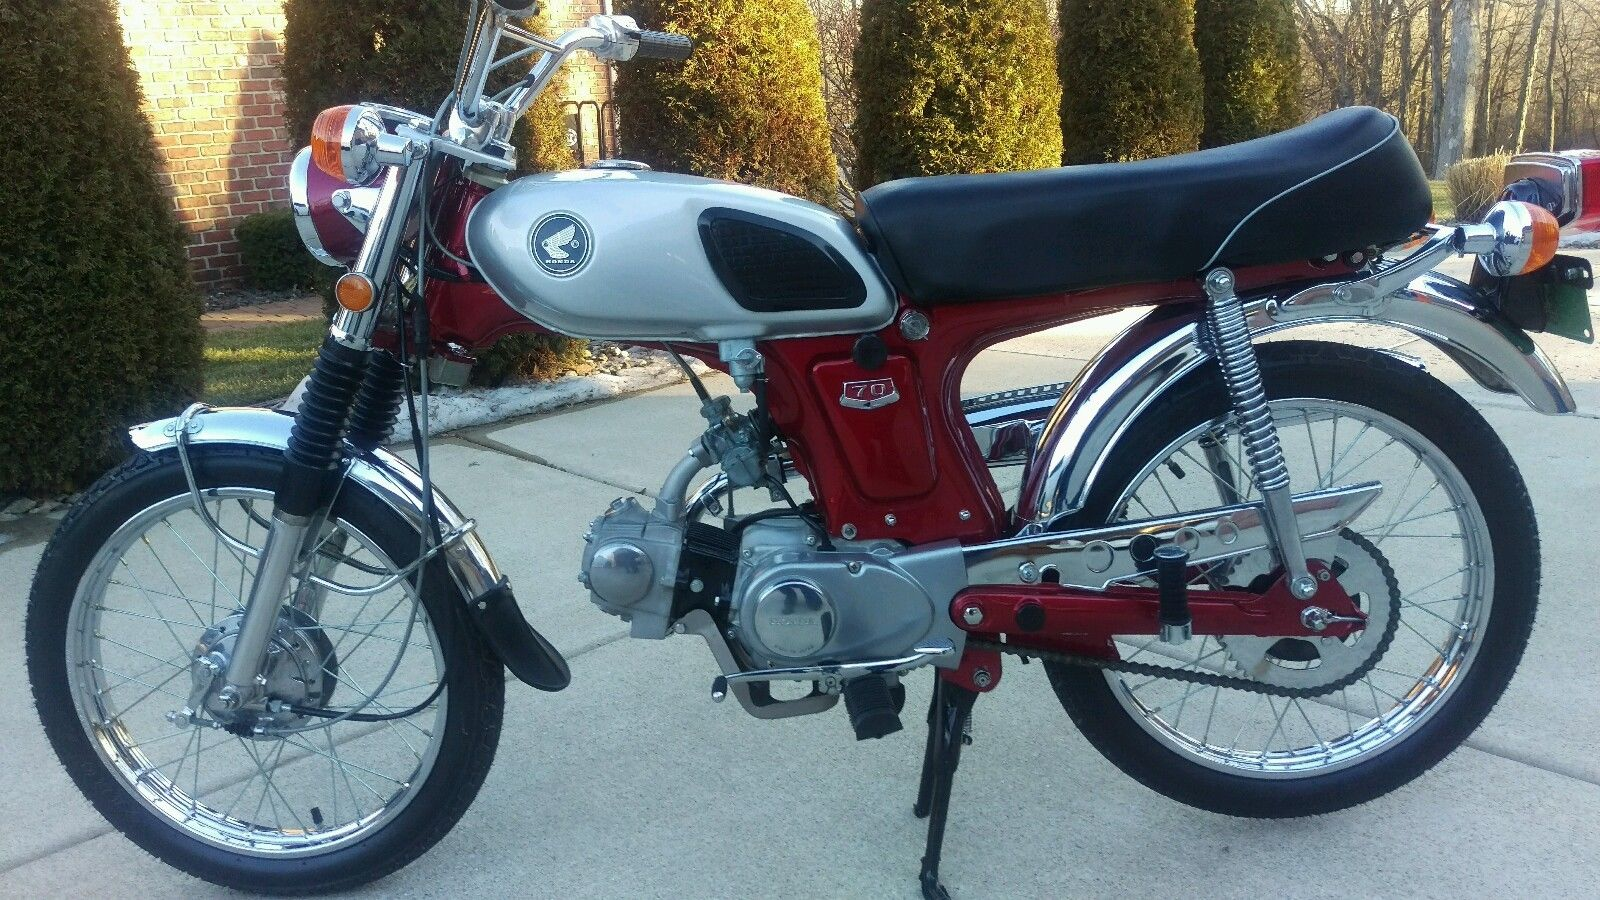 1972 Honda Sl100 Wiring Diagram Get Free Image About Wiring Diagram